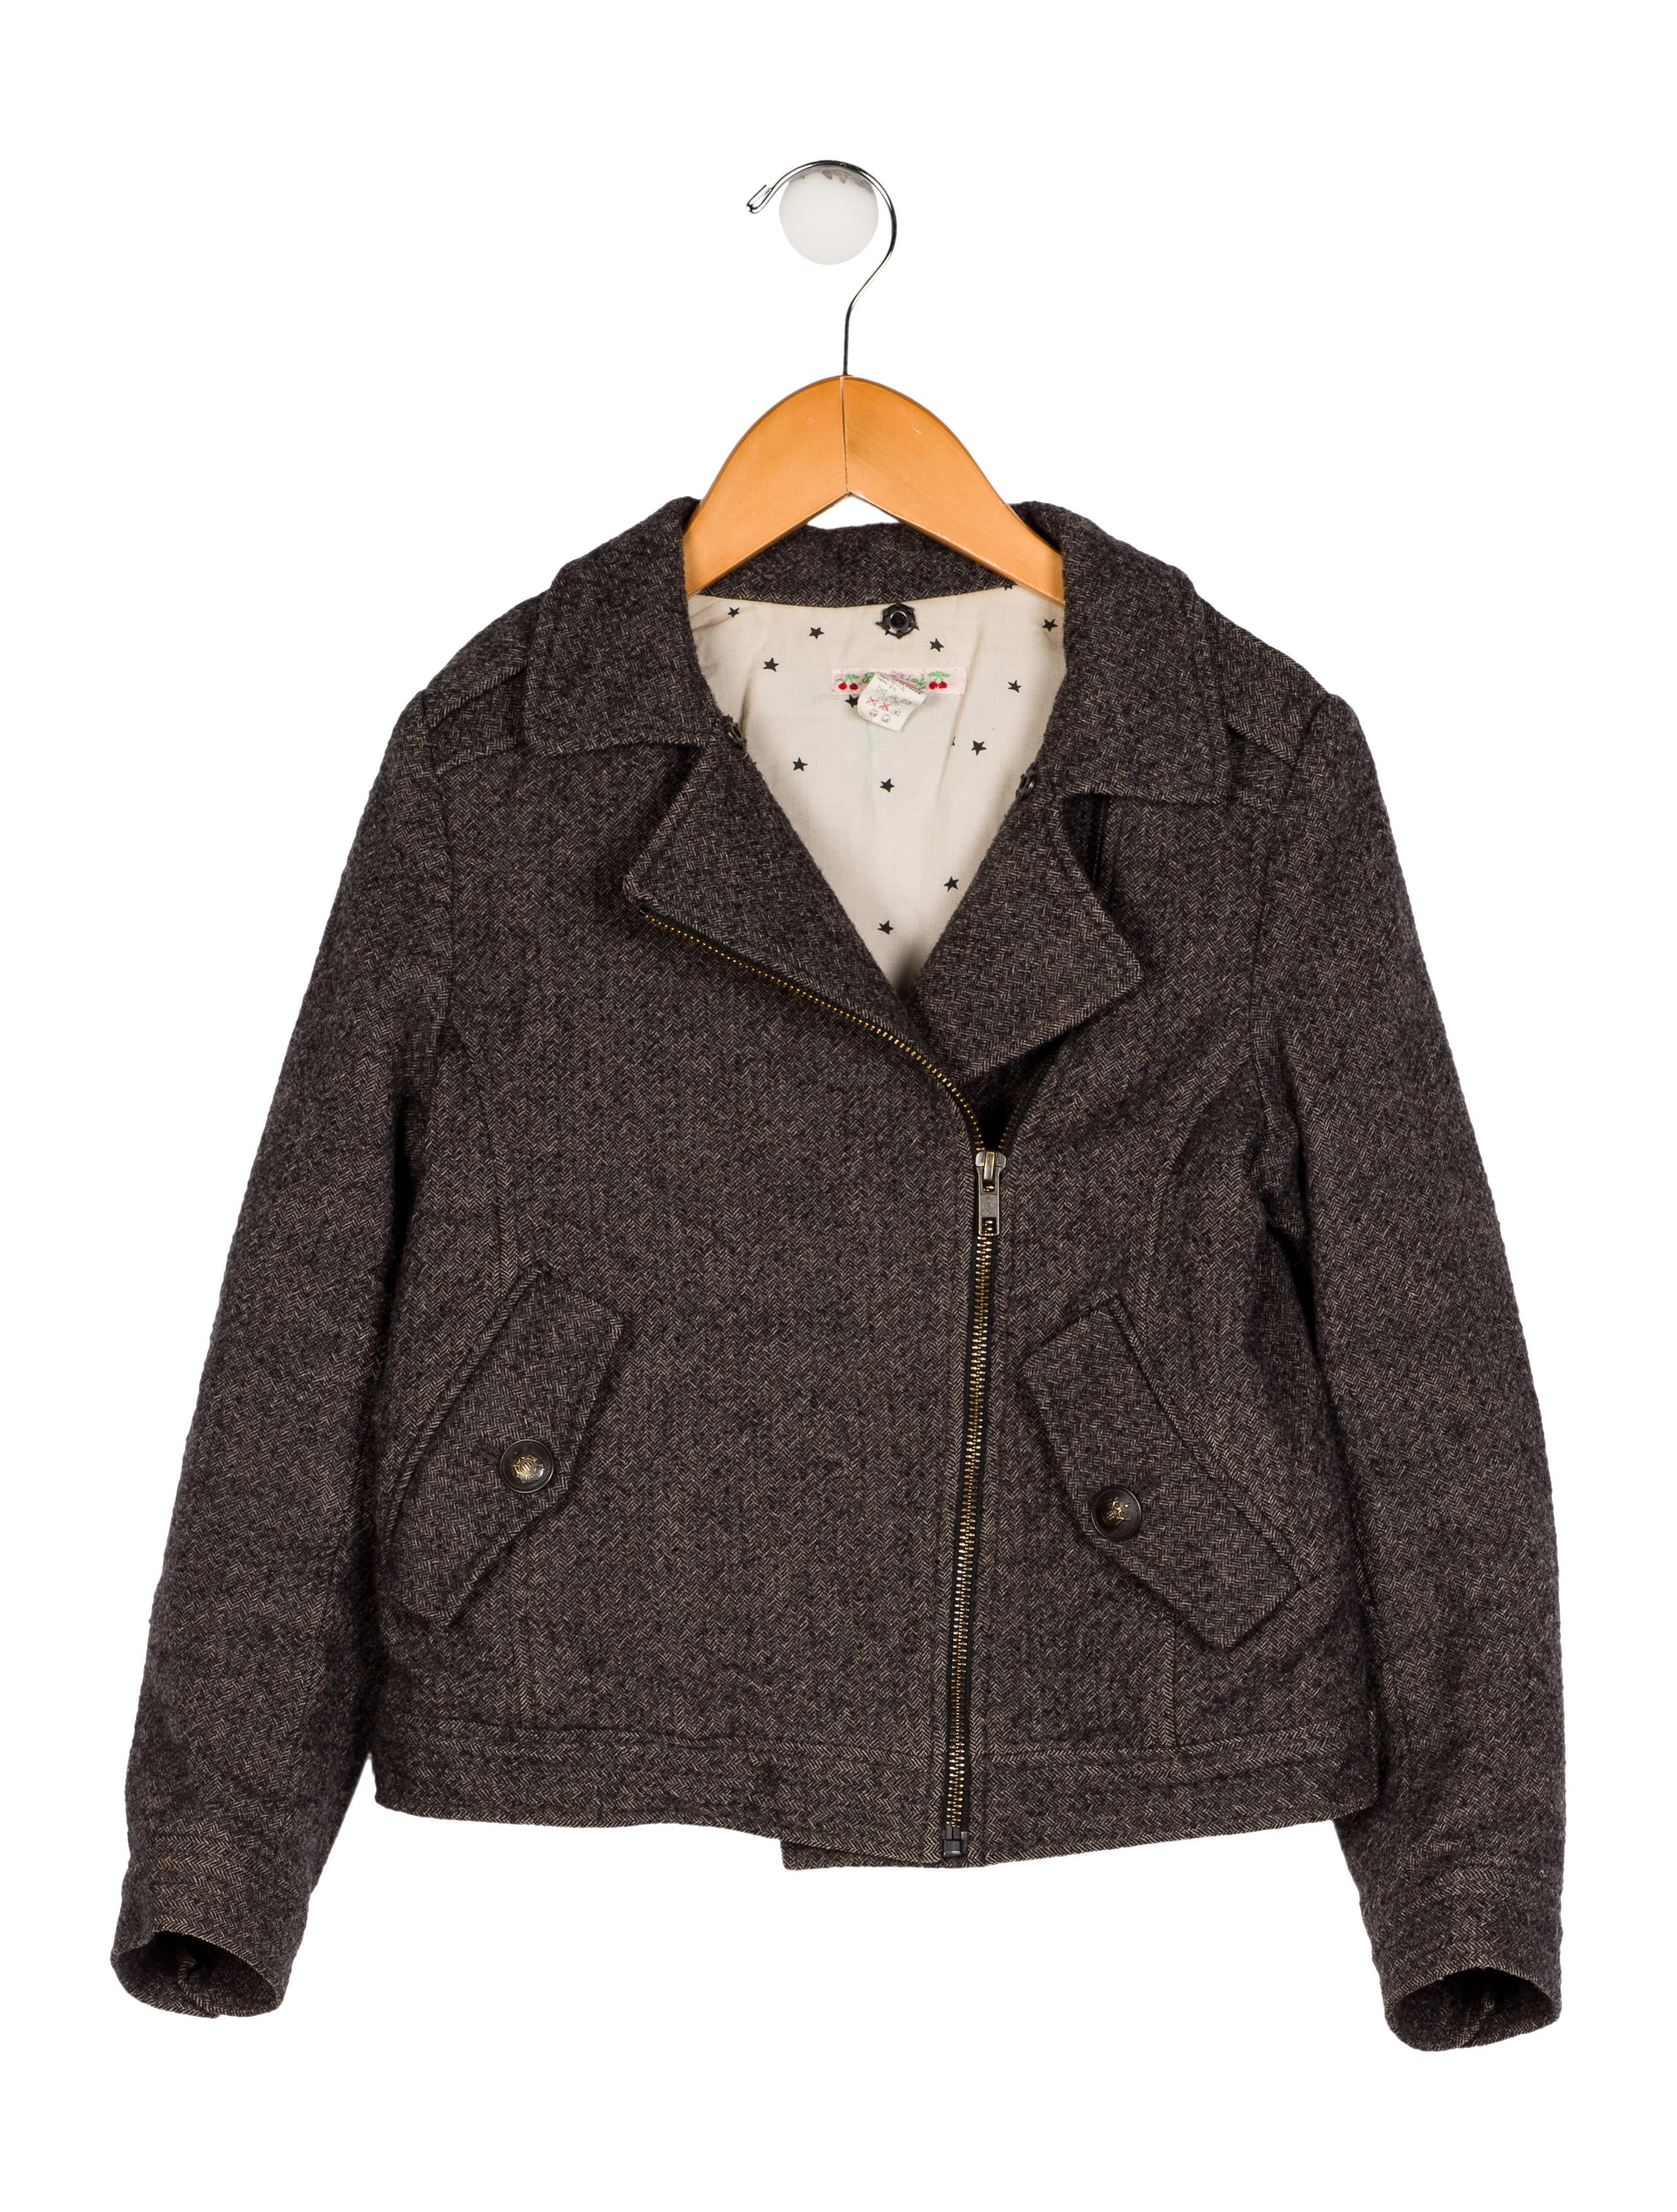 9c3a65448 Bonpoint Girls  Herringbone Wool Coat - Girls - WBONP30255